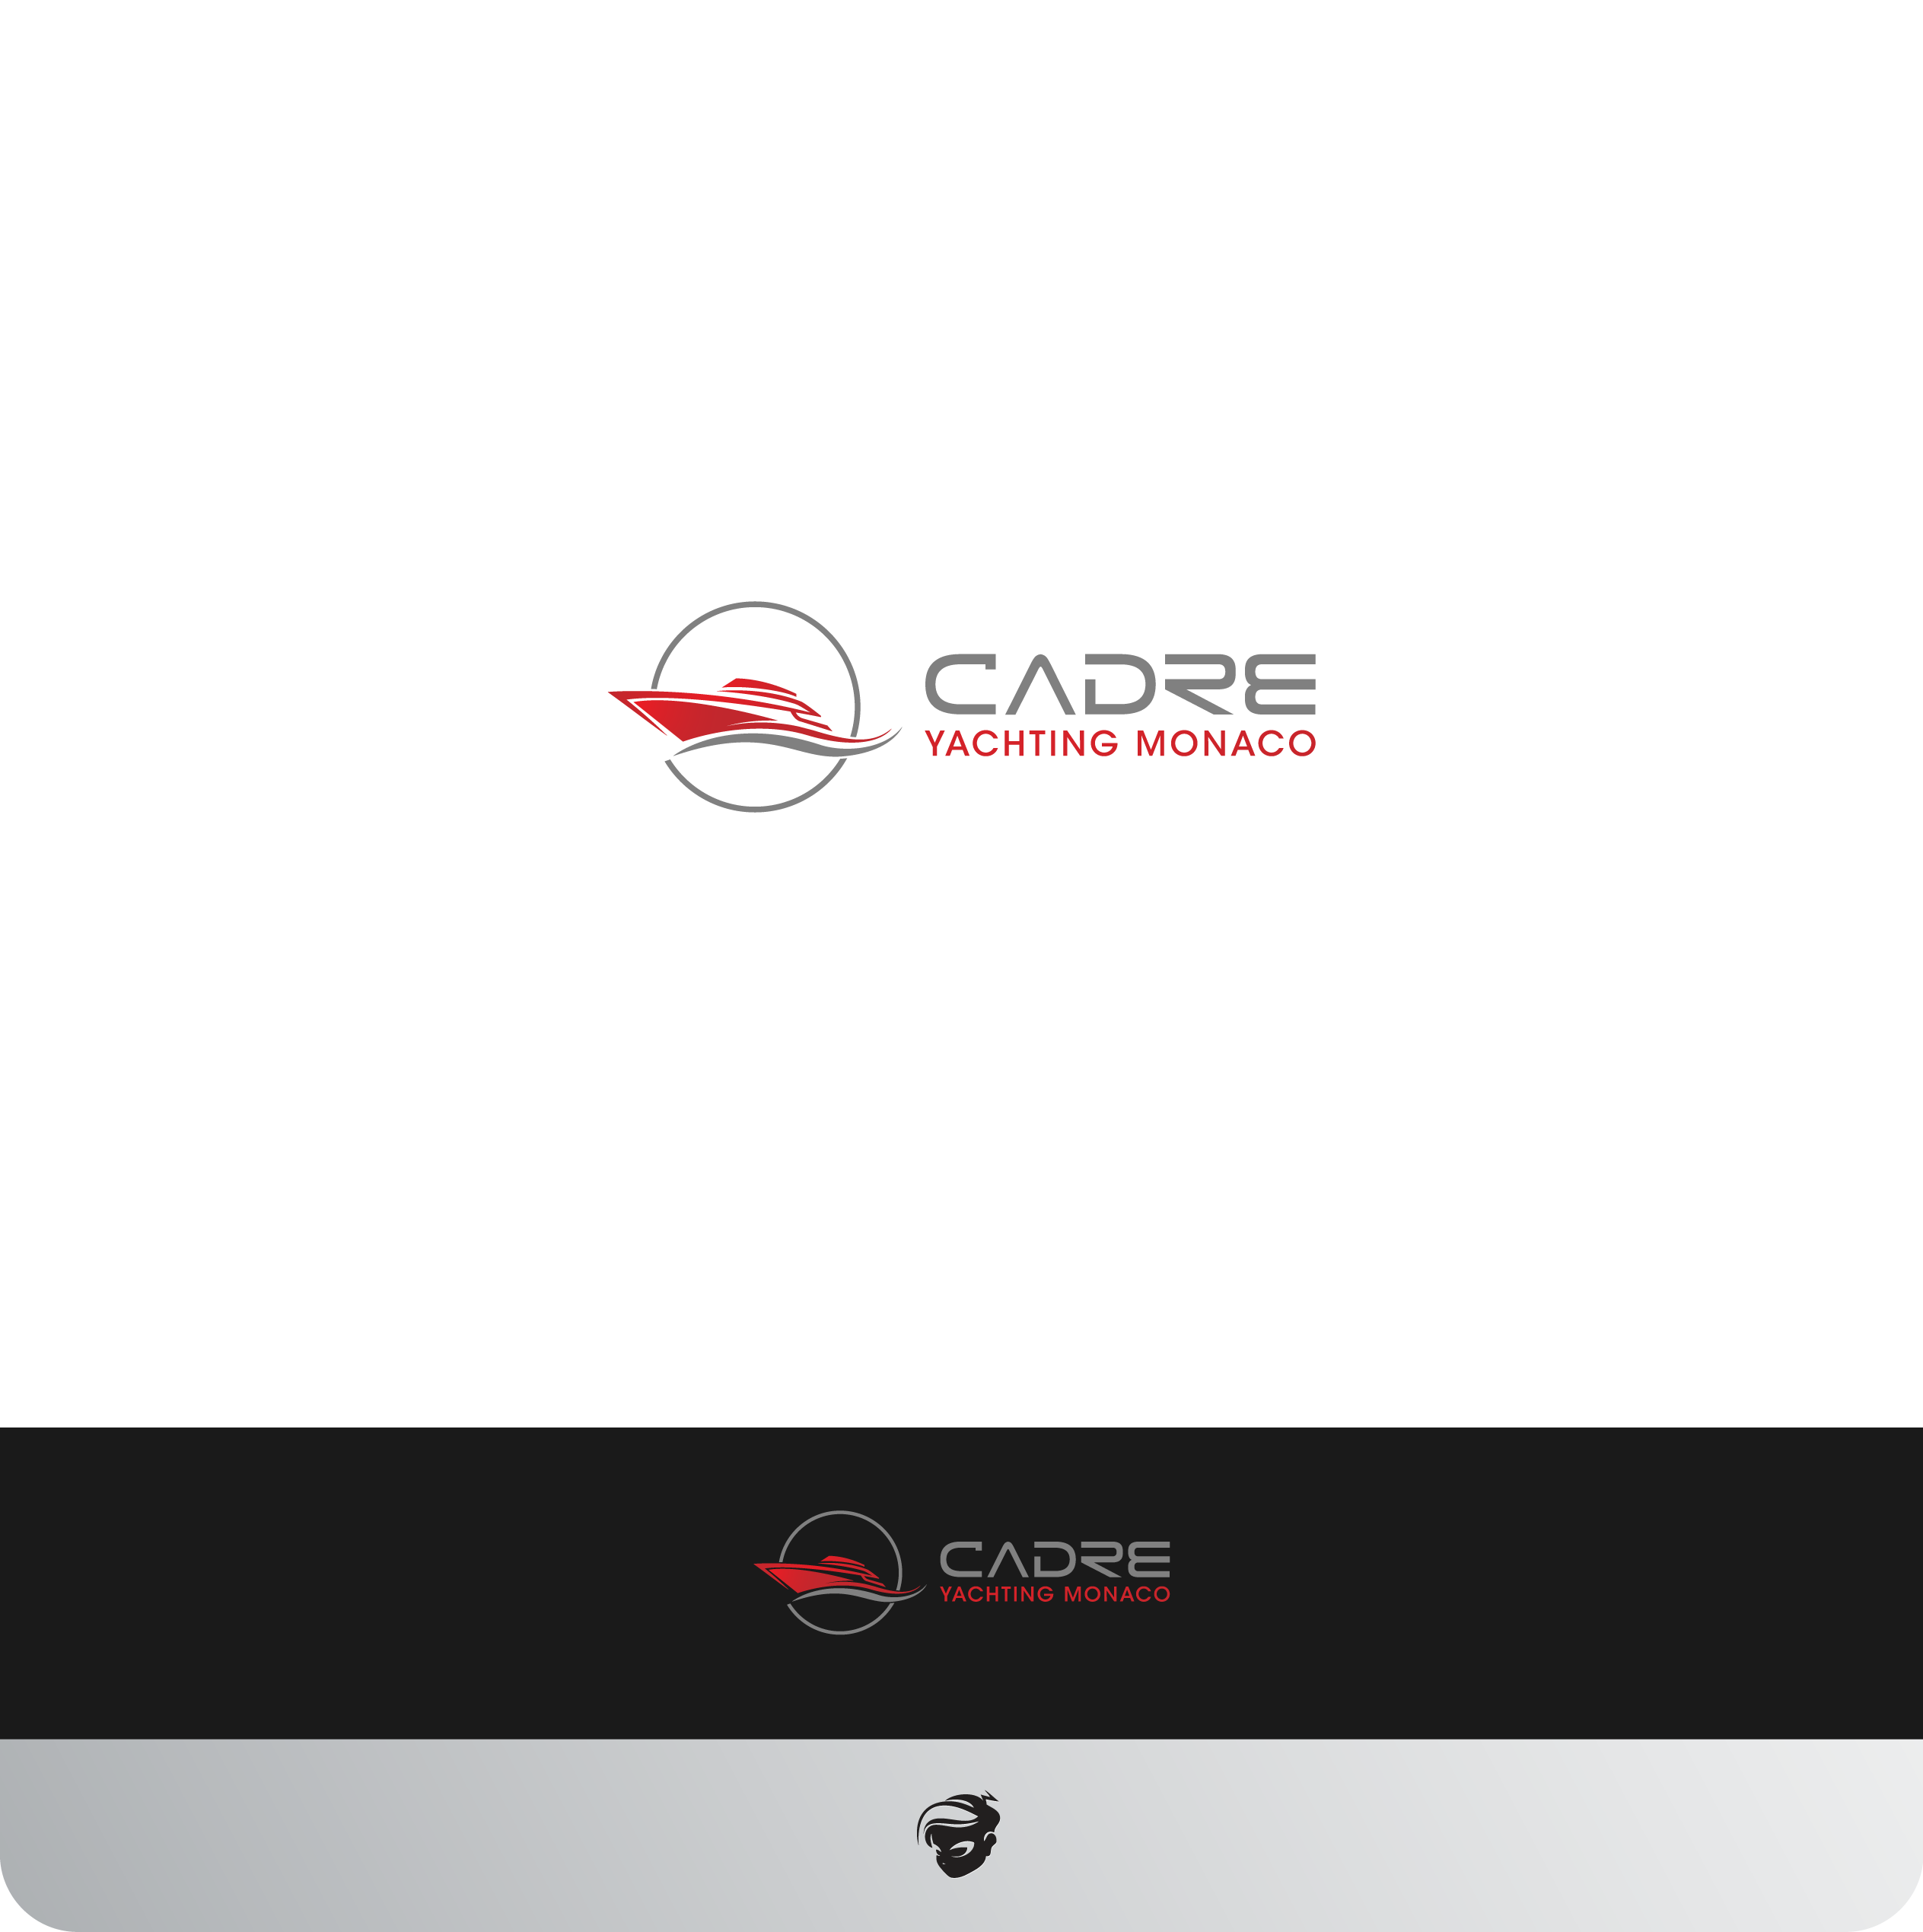 Logo Design by zesthar - Entry No. 408 in the Logo Design Contest New Logo Design for Cadre Yachting Monaco.